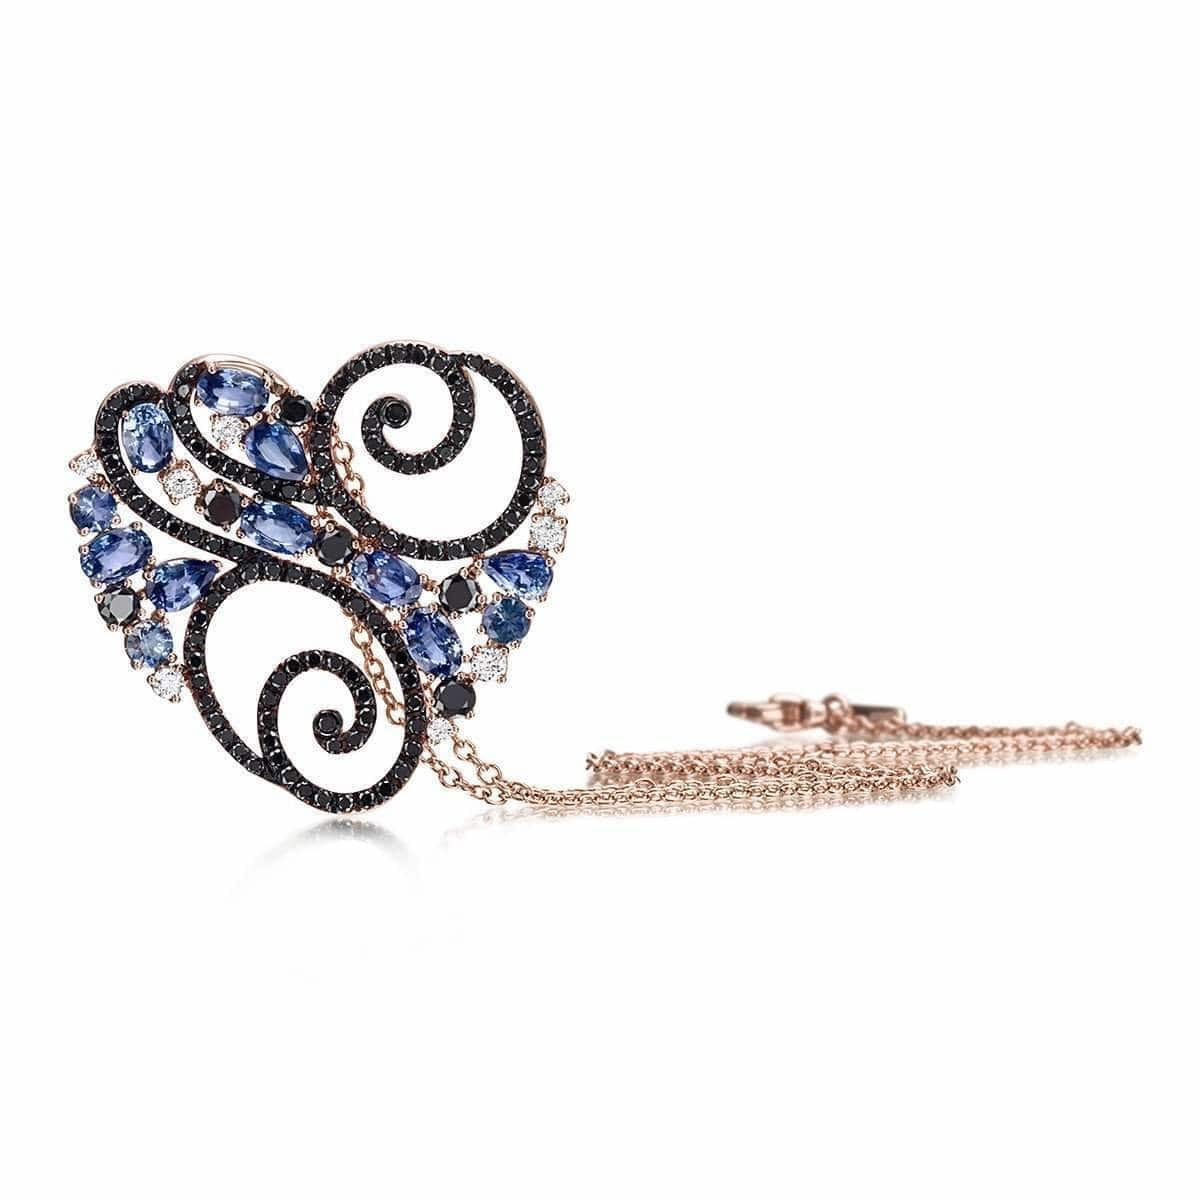 Rose Gold, Diamond & Sapphire Ramage Collection Necklace | Pinomanna